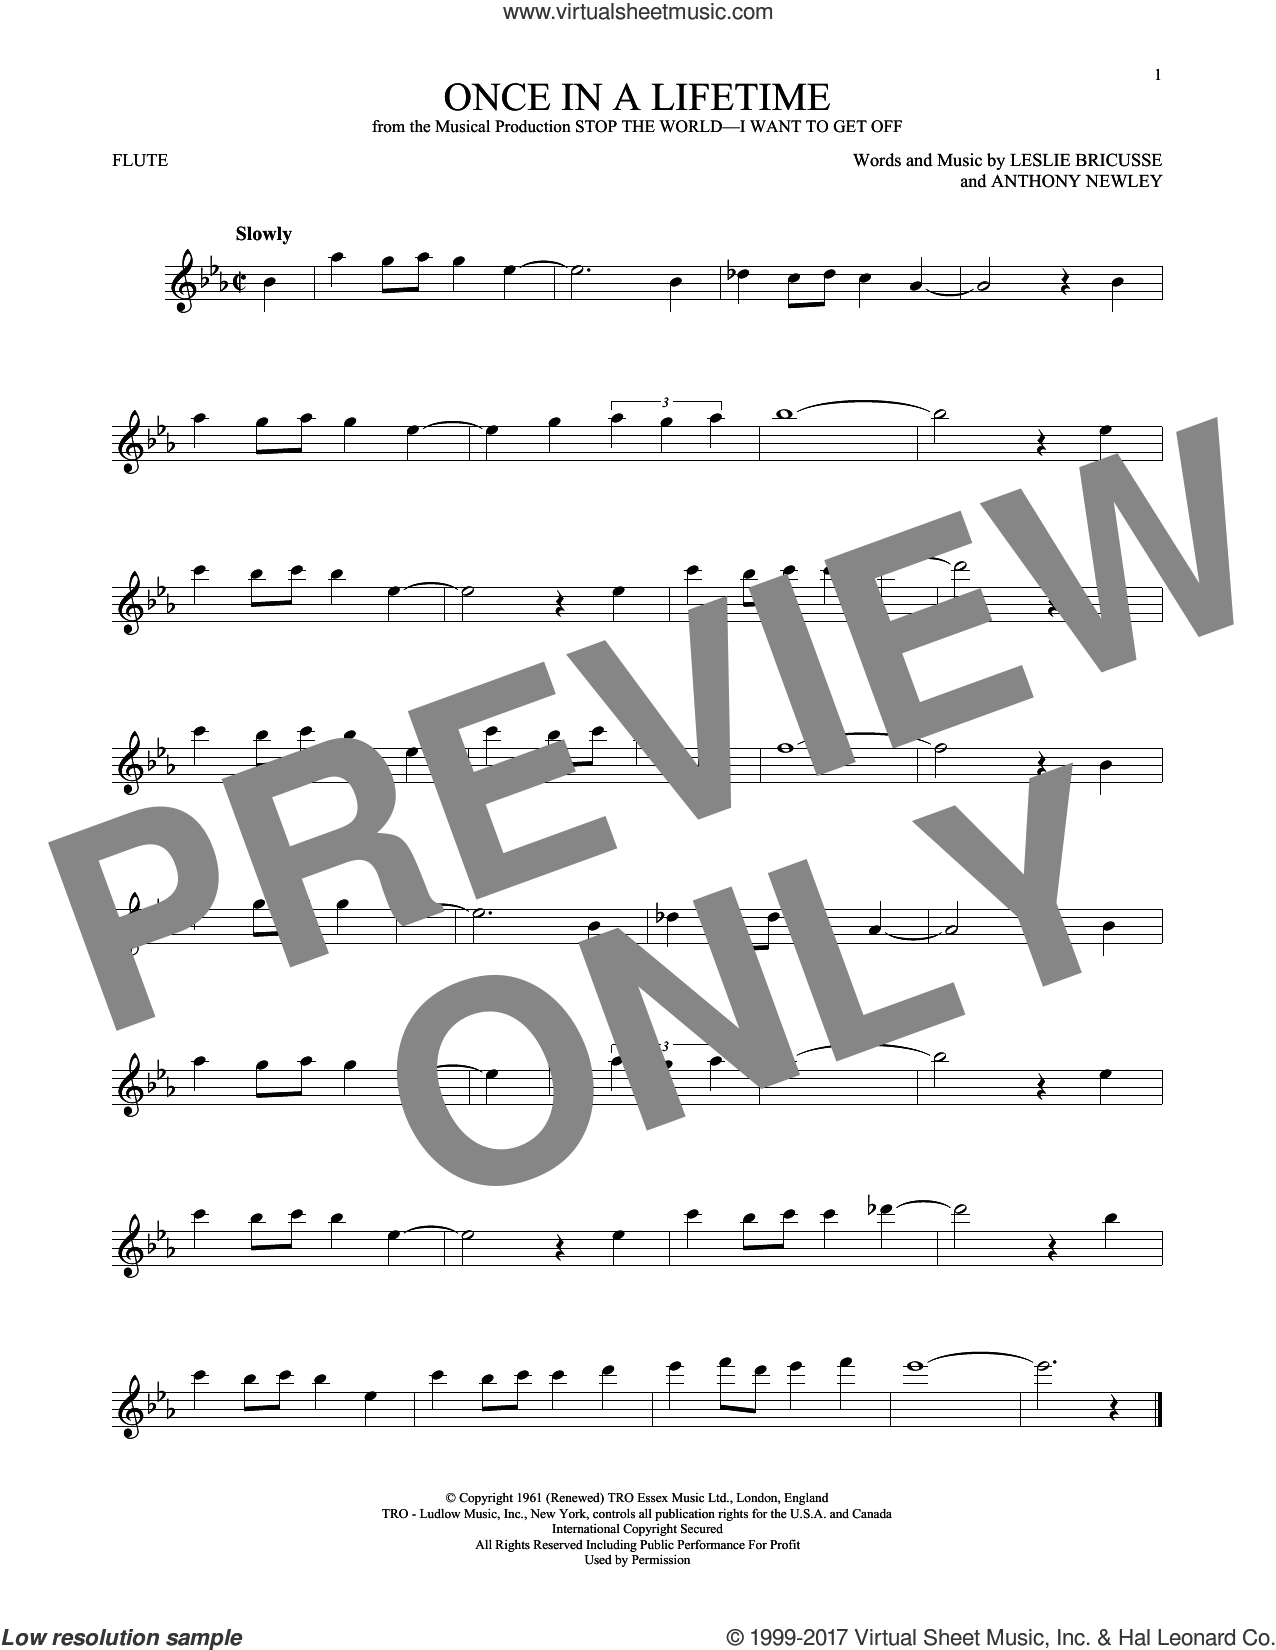 Once In A Lifetime sheet music for flute solo by Leslie Bricusse and Anthony Newley, intermediate skill level